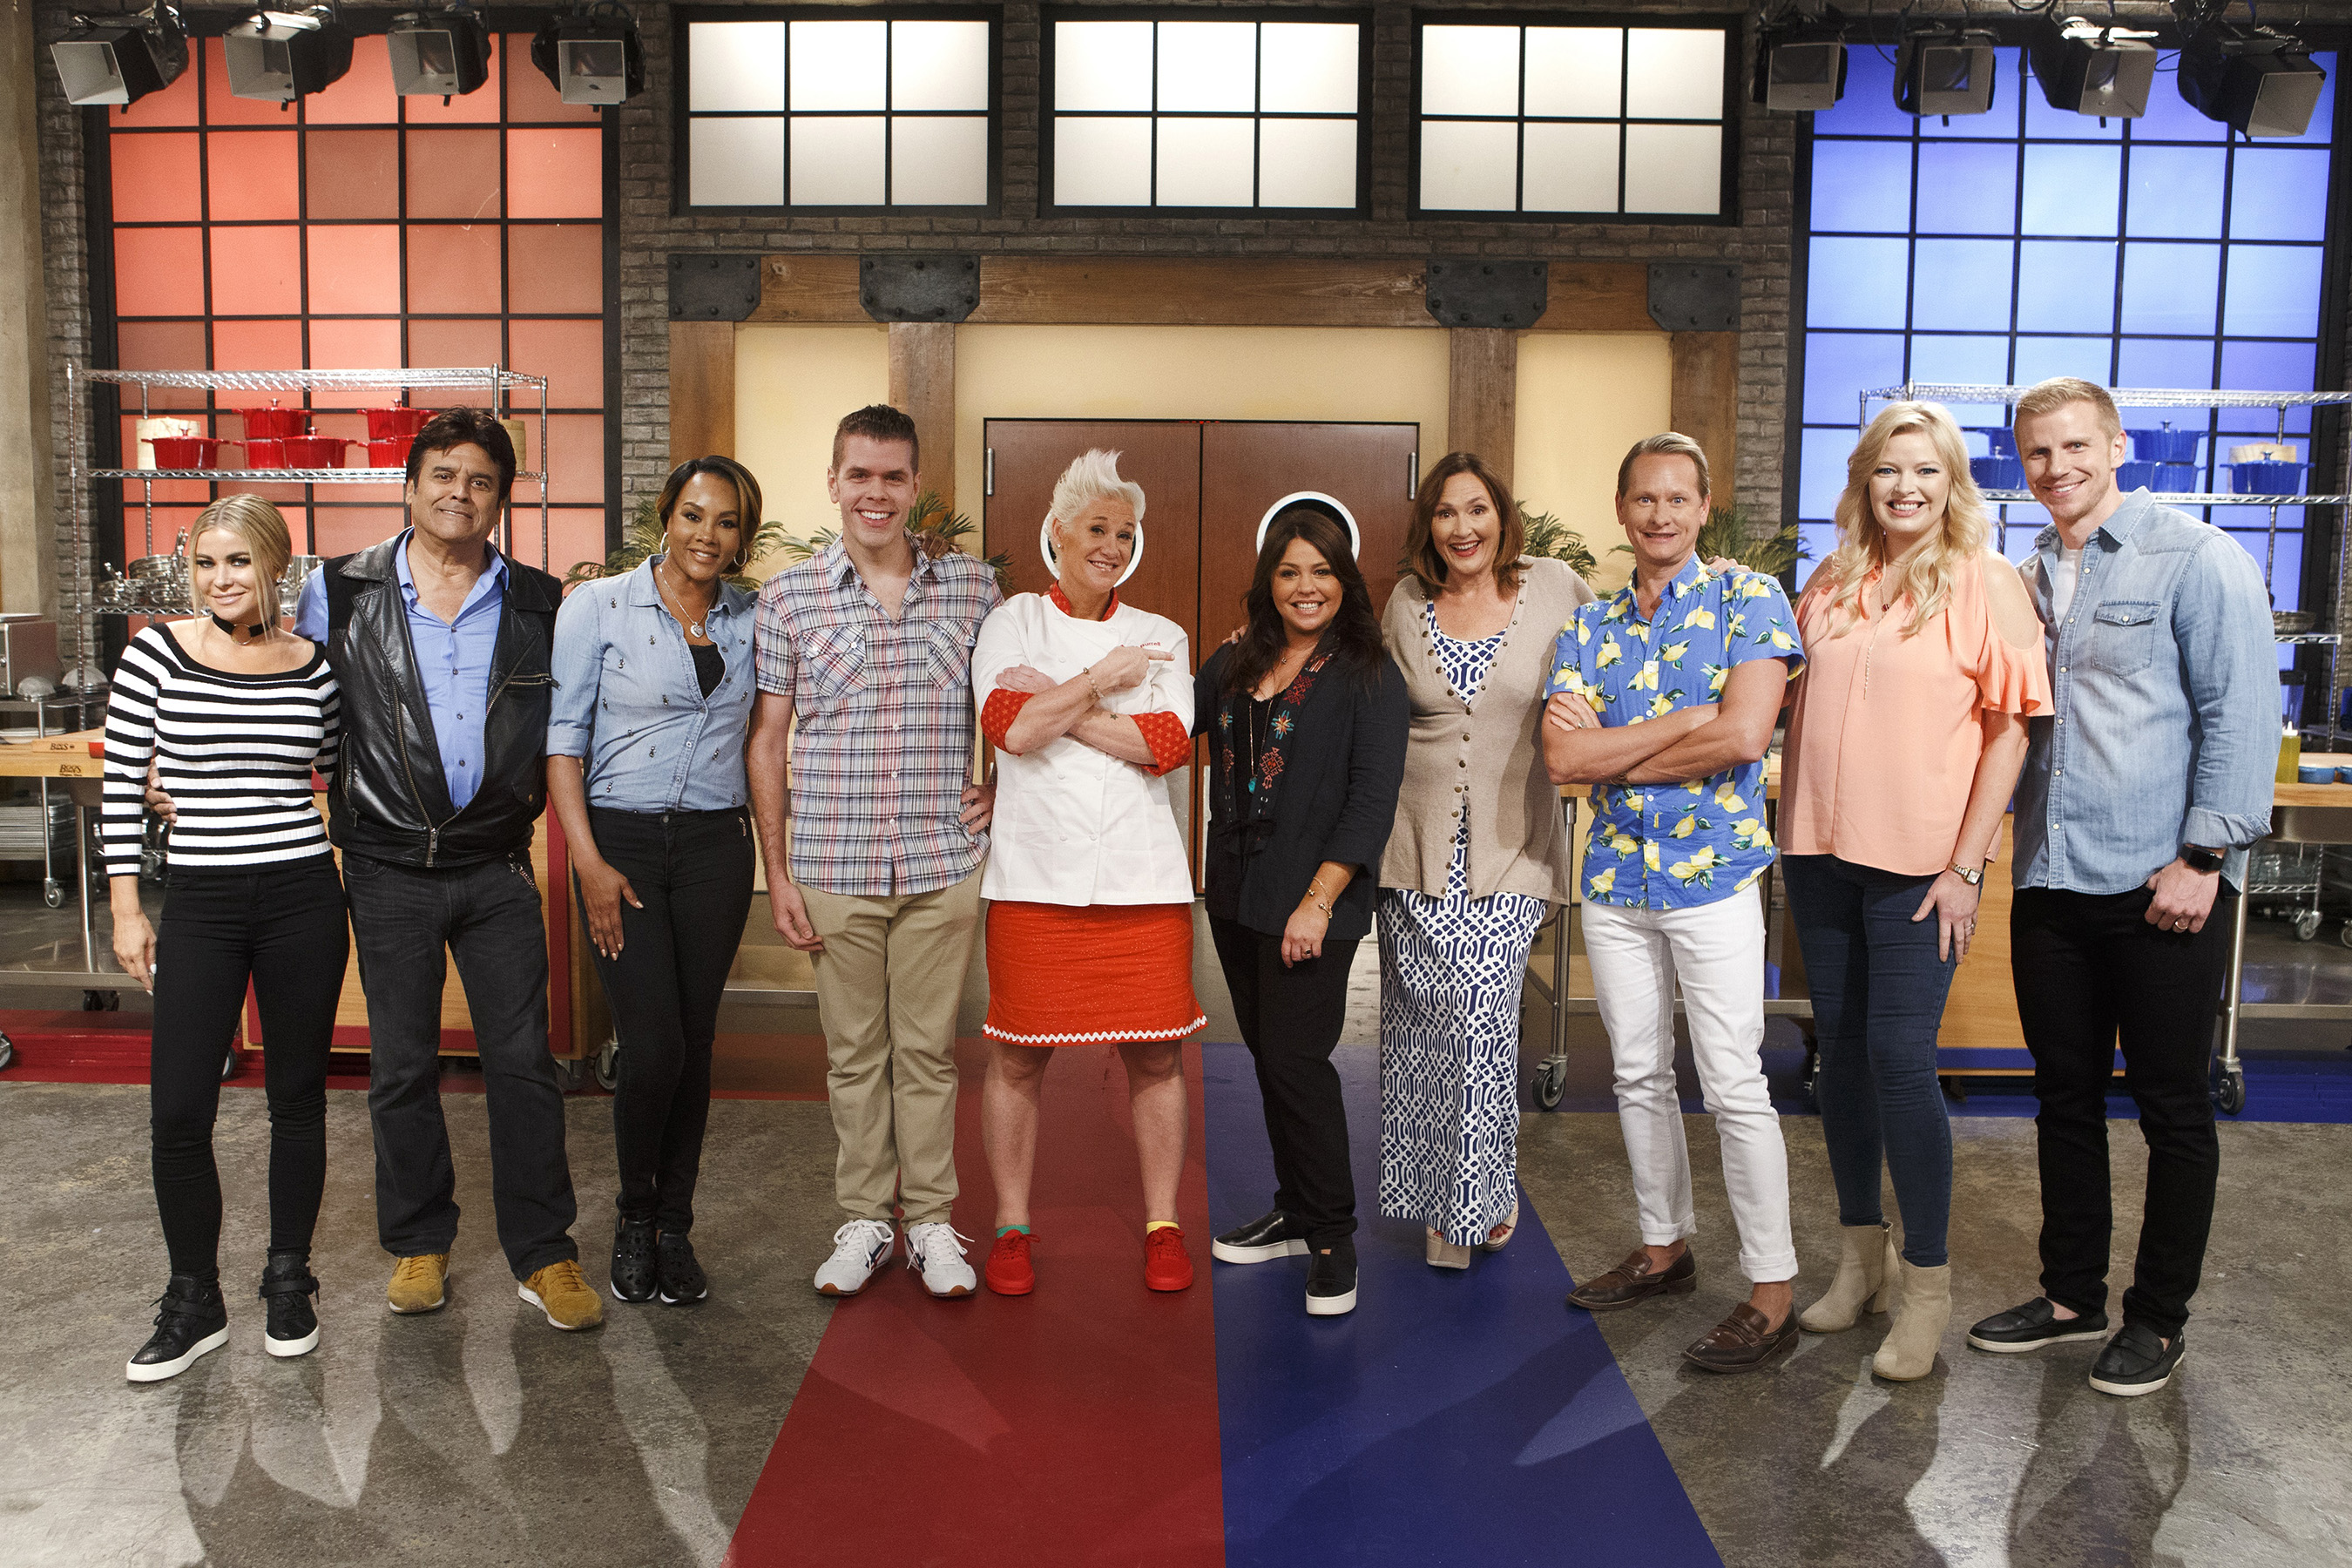 Anne Burrell and Rachael Ray pose with the celebrity competitors on Food Network's Worst Cooks in America